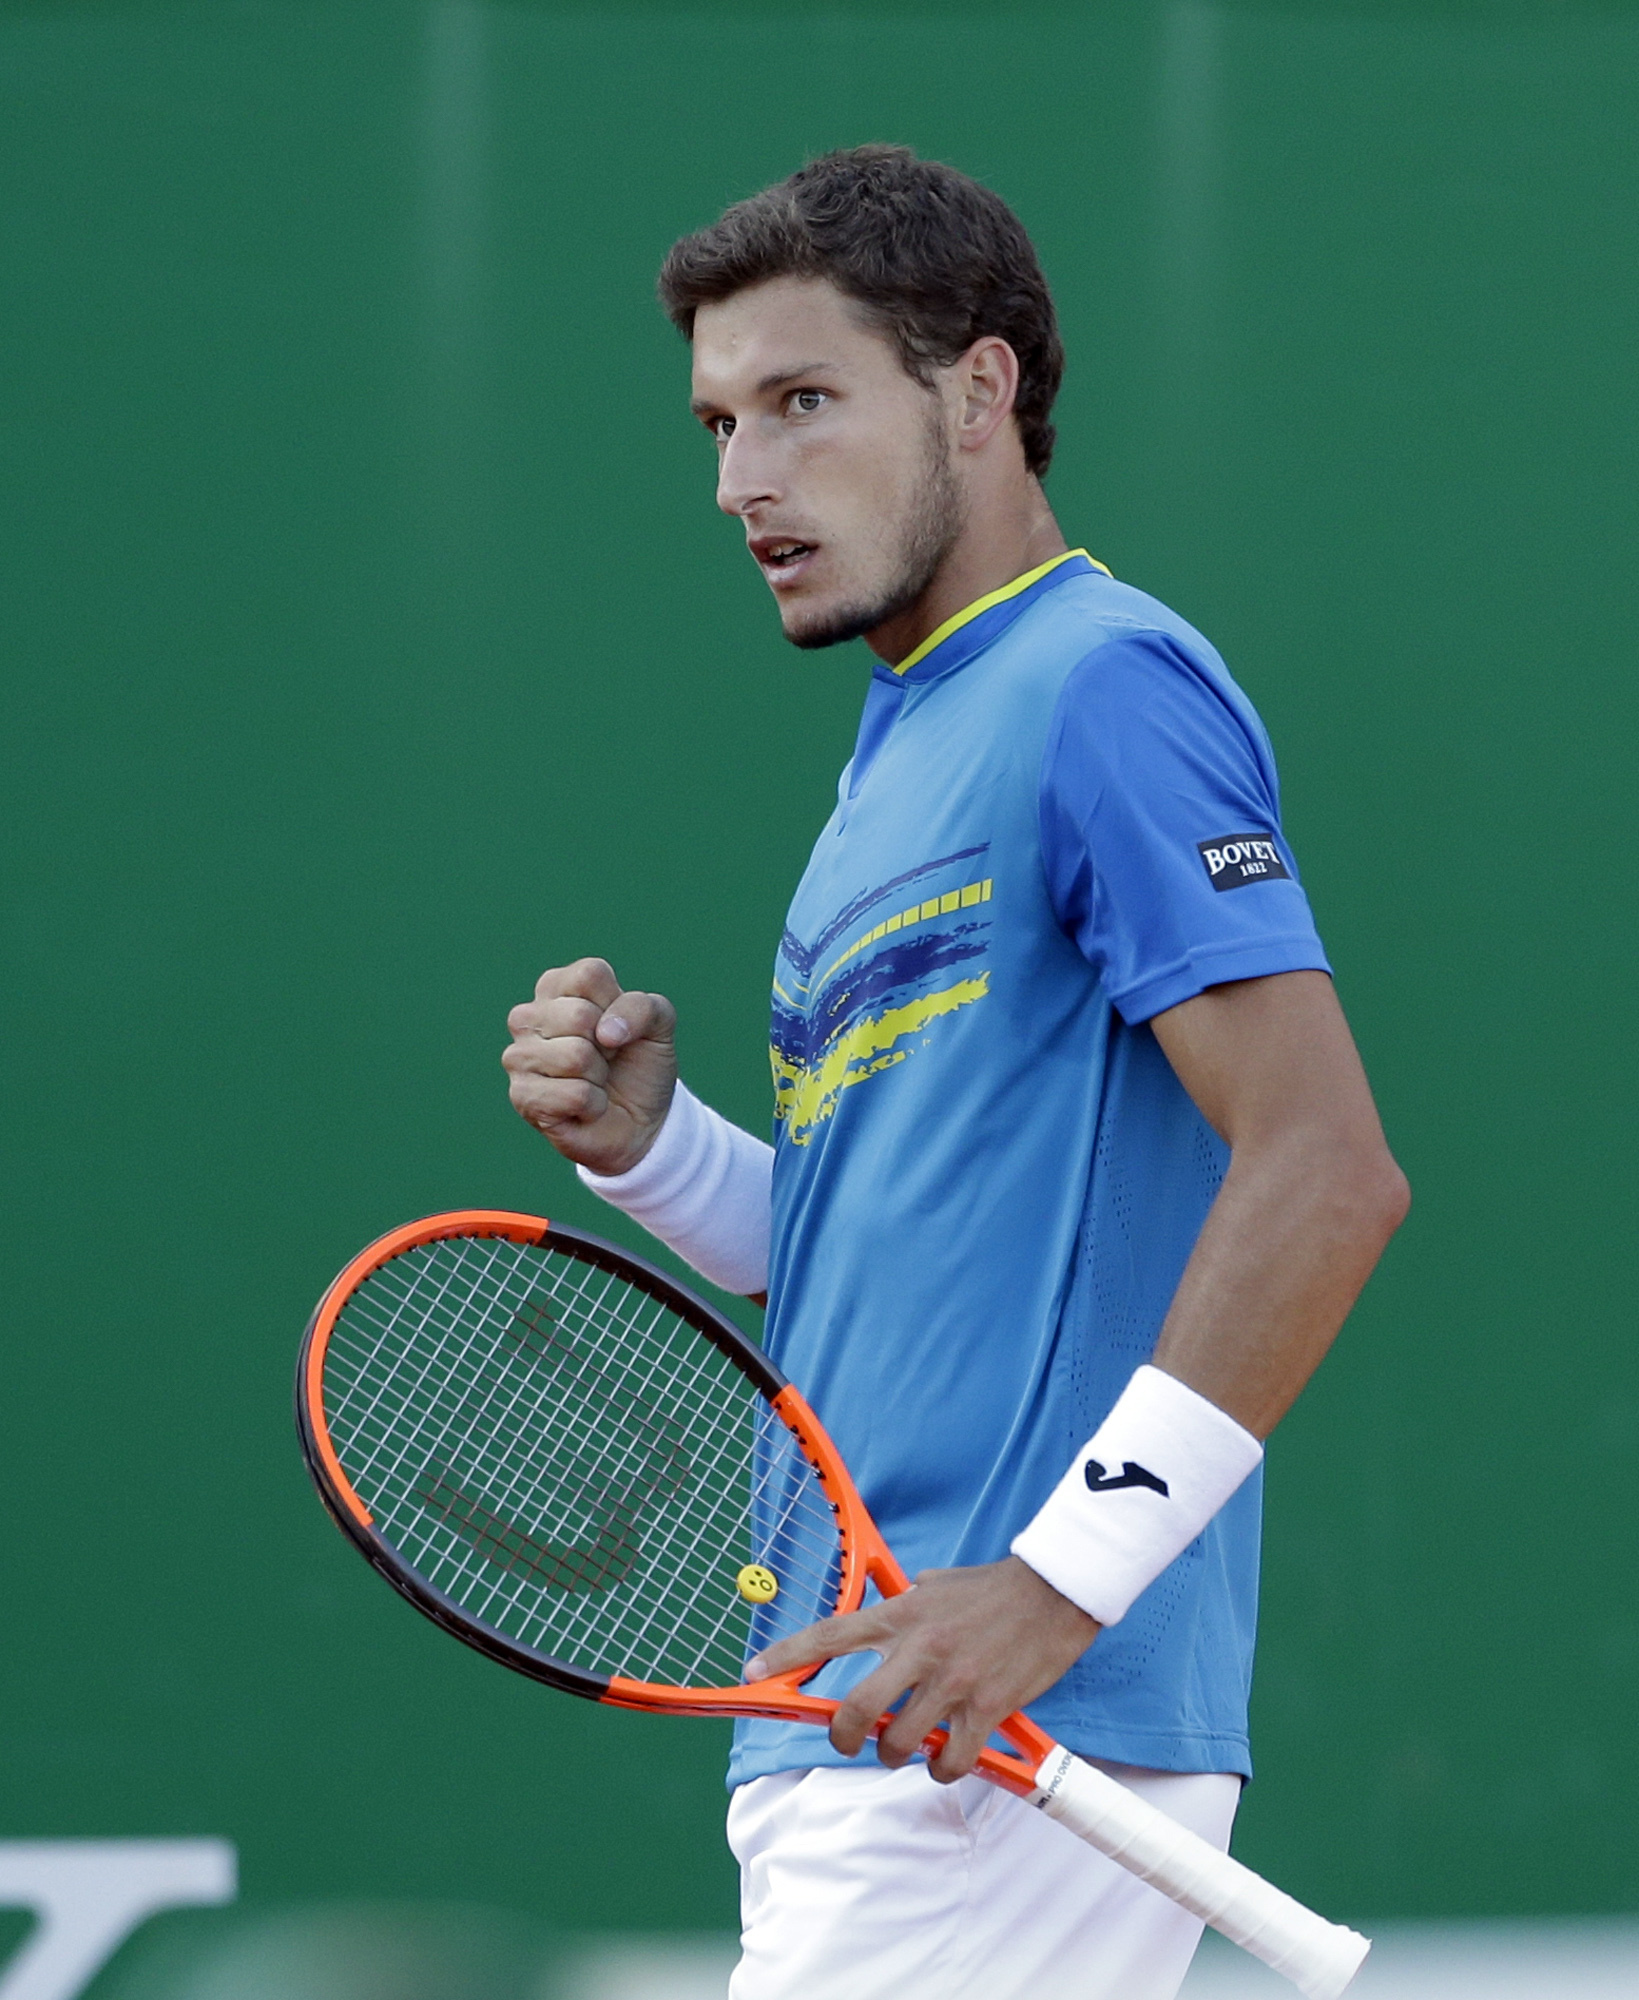 Spain's Pablo Carreno Busta reacts, during their third round match of the Monte Carlo Tennis Masters tournament against Serbia's Novak Djokovic, in Monaco, Thursday, April, 20, 2017. (AP Photo/Claude Paris)